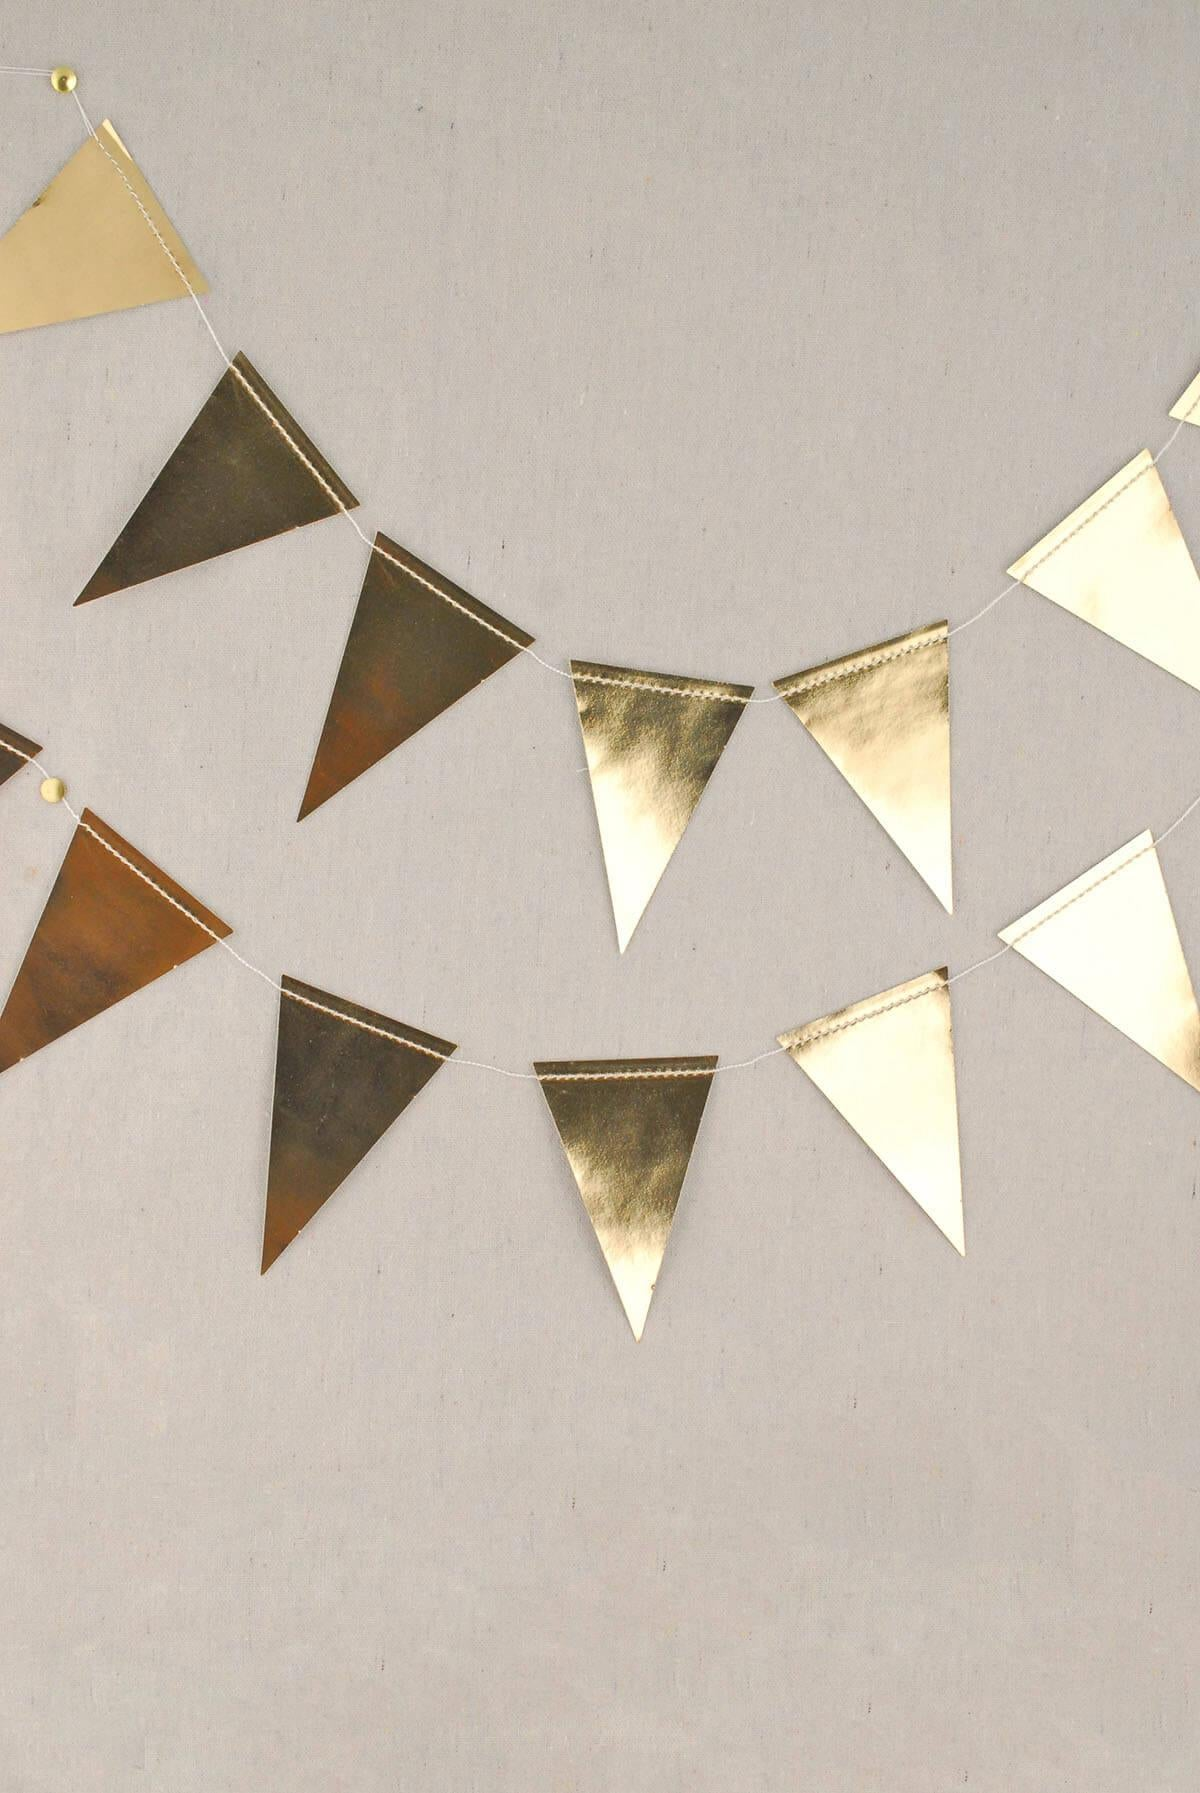 Gold Foil Mini Pennant Banner 8', My Minds Eye